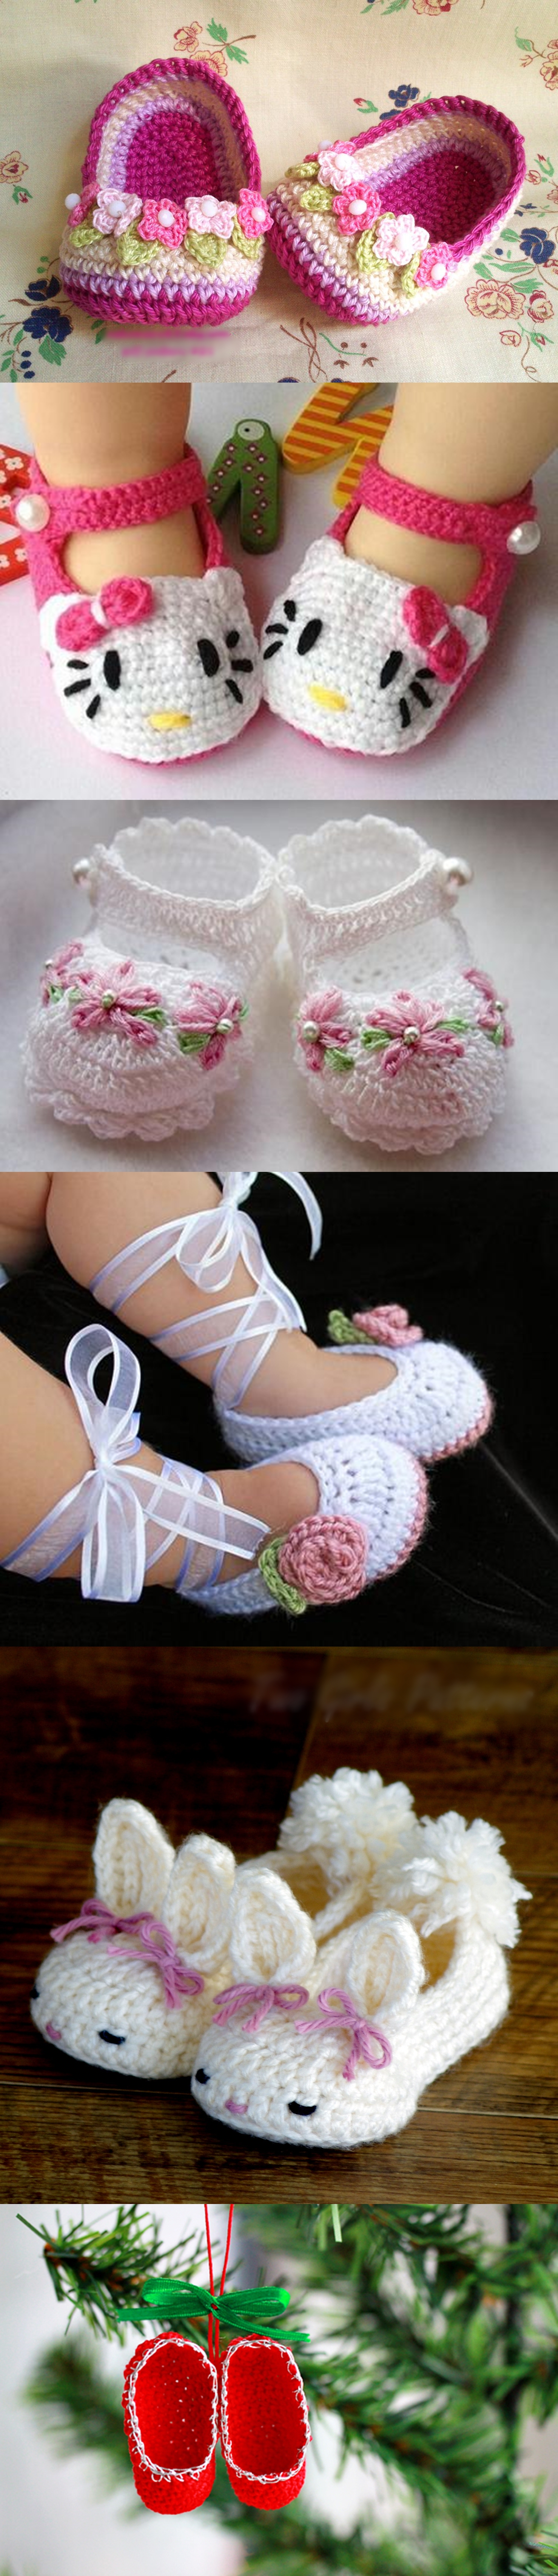 crochet baby slippers M1 Wonderful DIY Crochet Baby Slippers